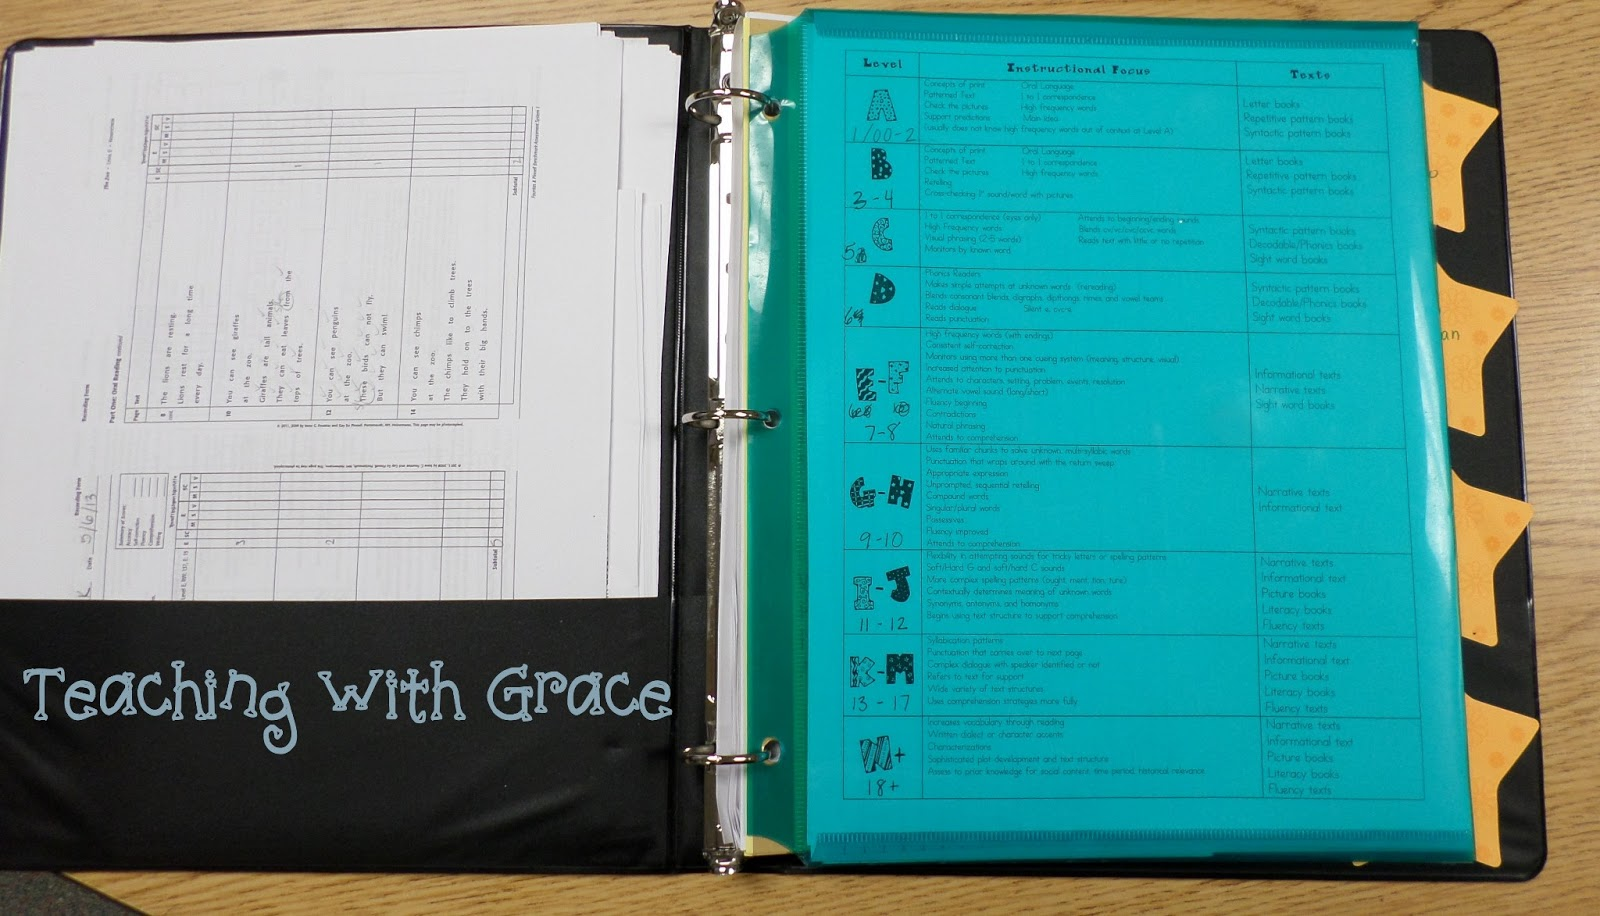 Teaching with grace guided reading binder a quick look see for Reading binder cover